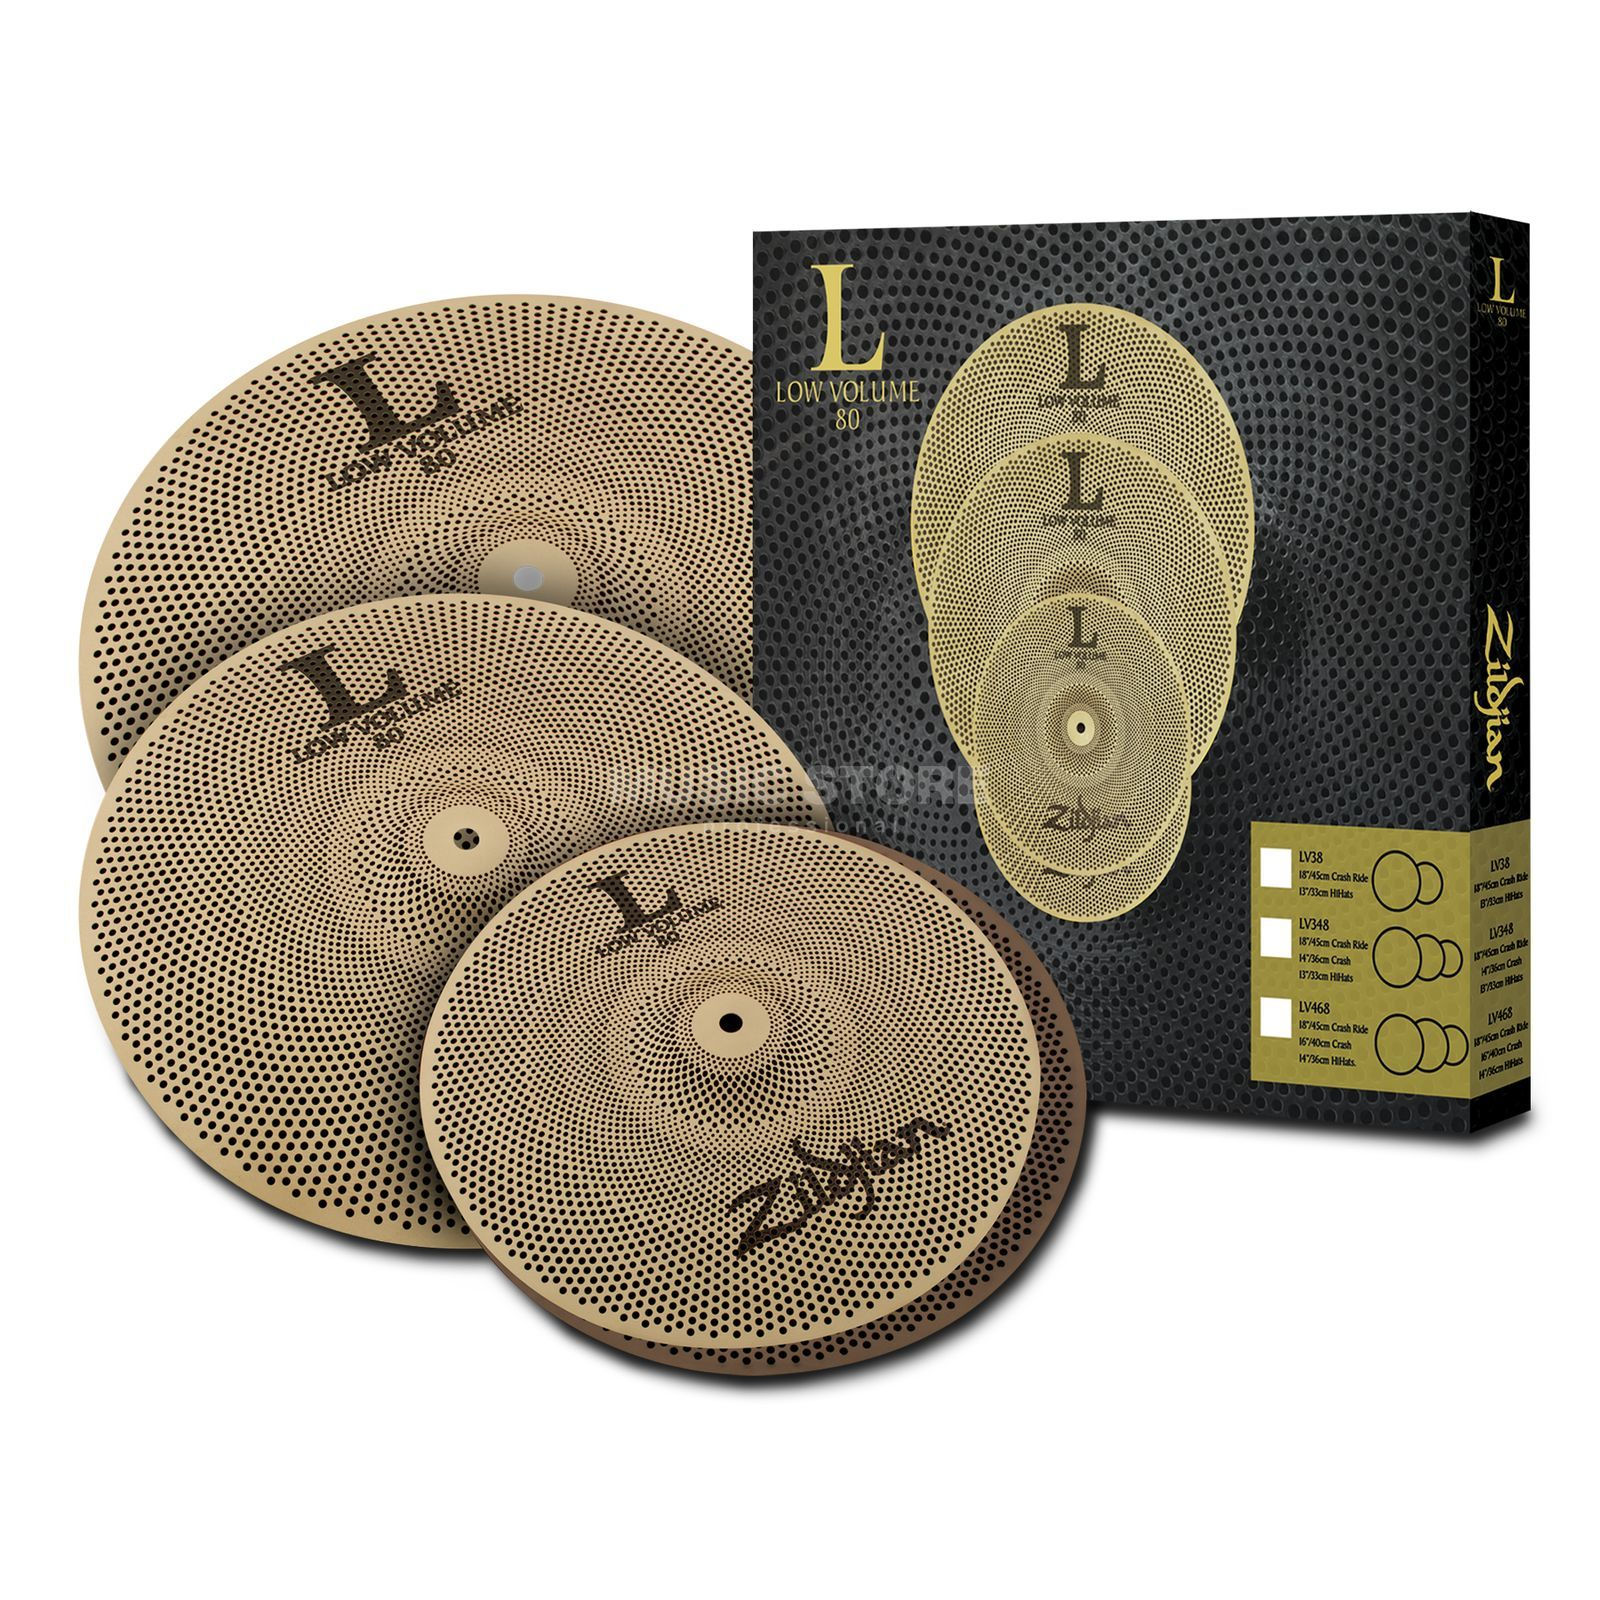 Zildjian L80 Low Volume 468 Box Set Produktbillede